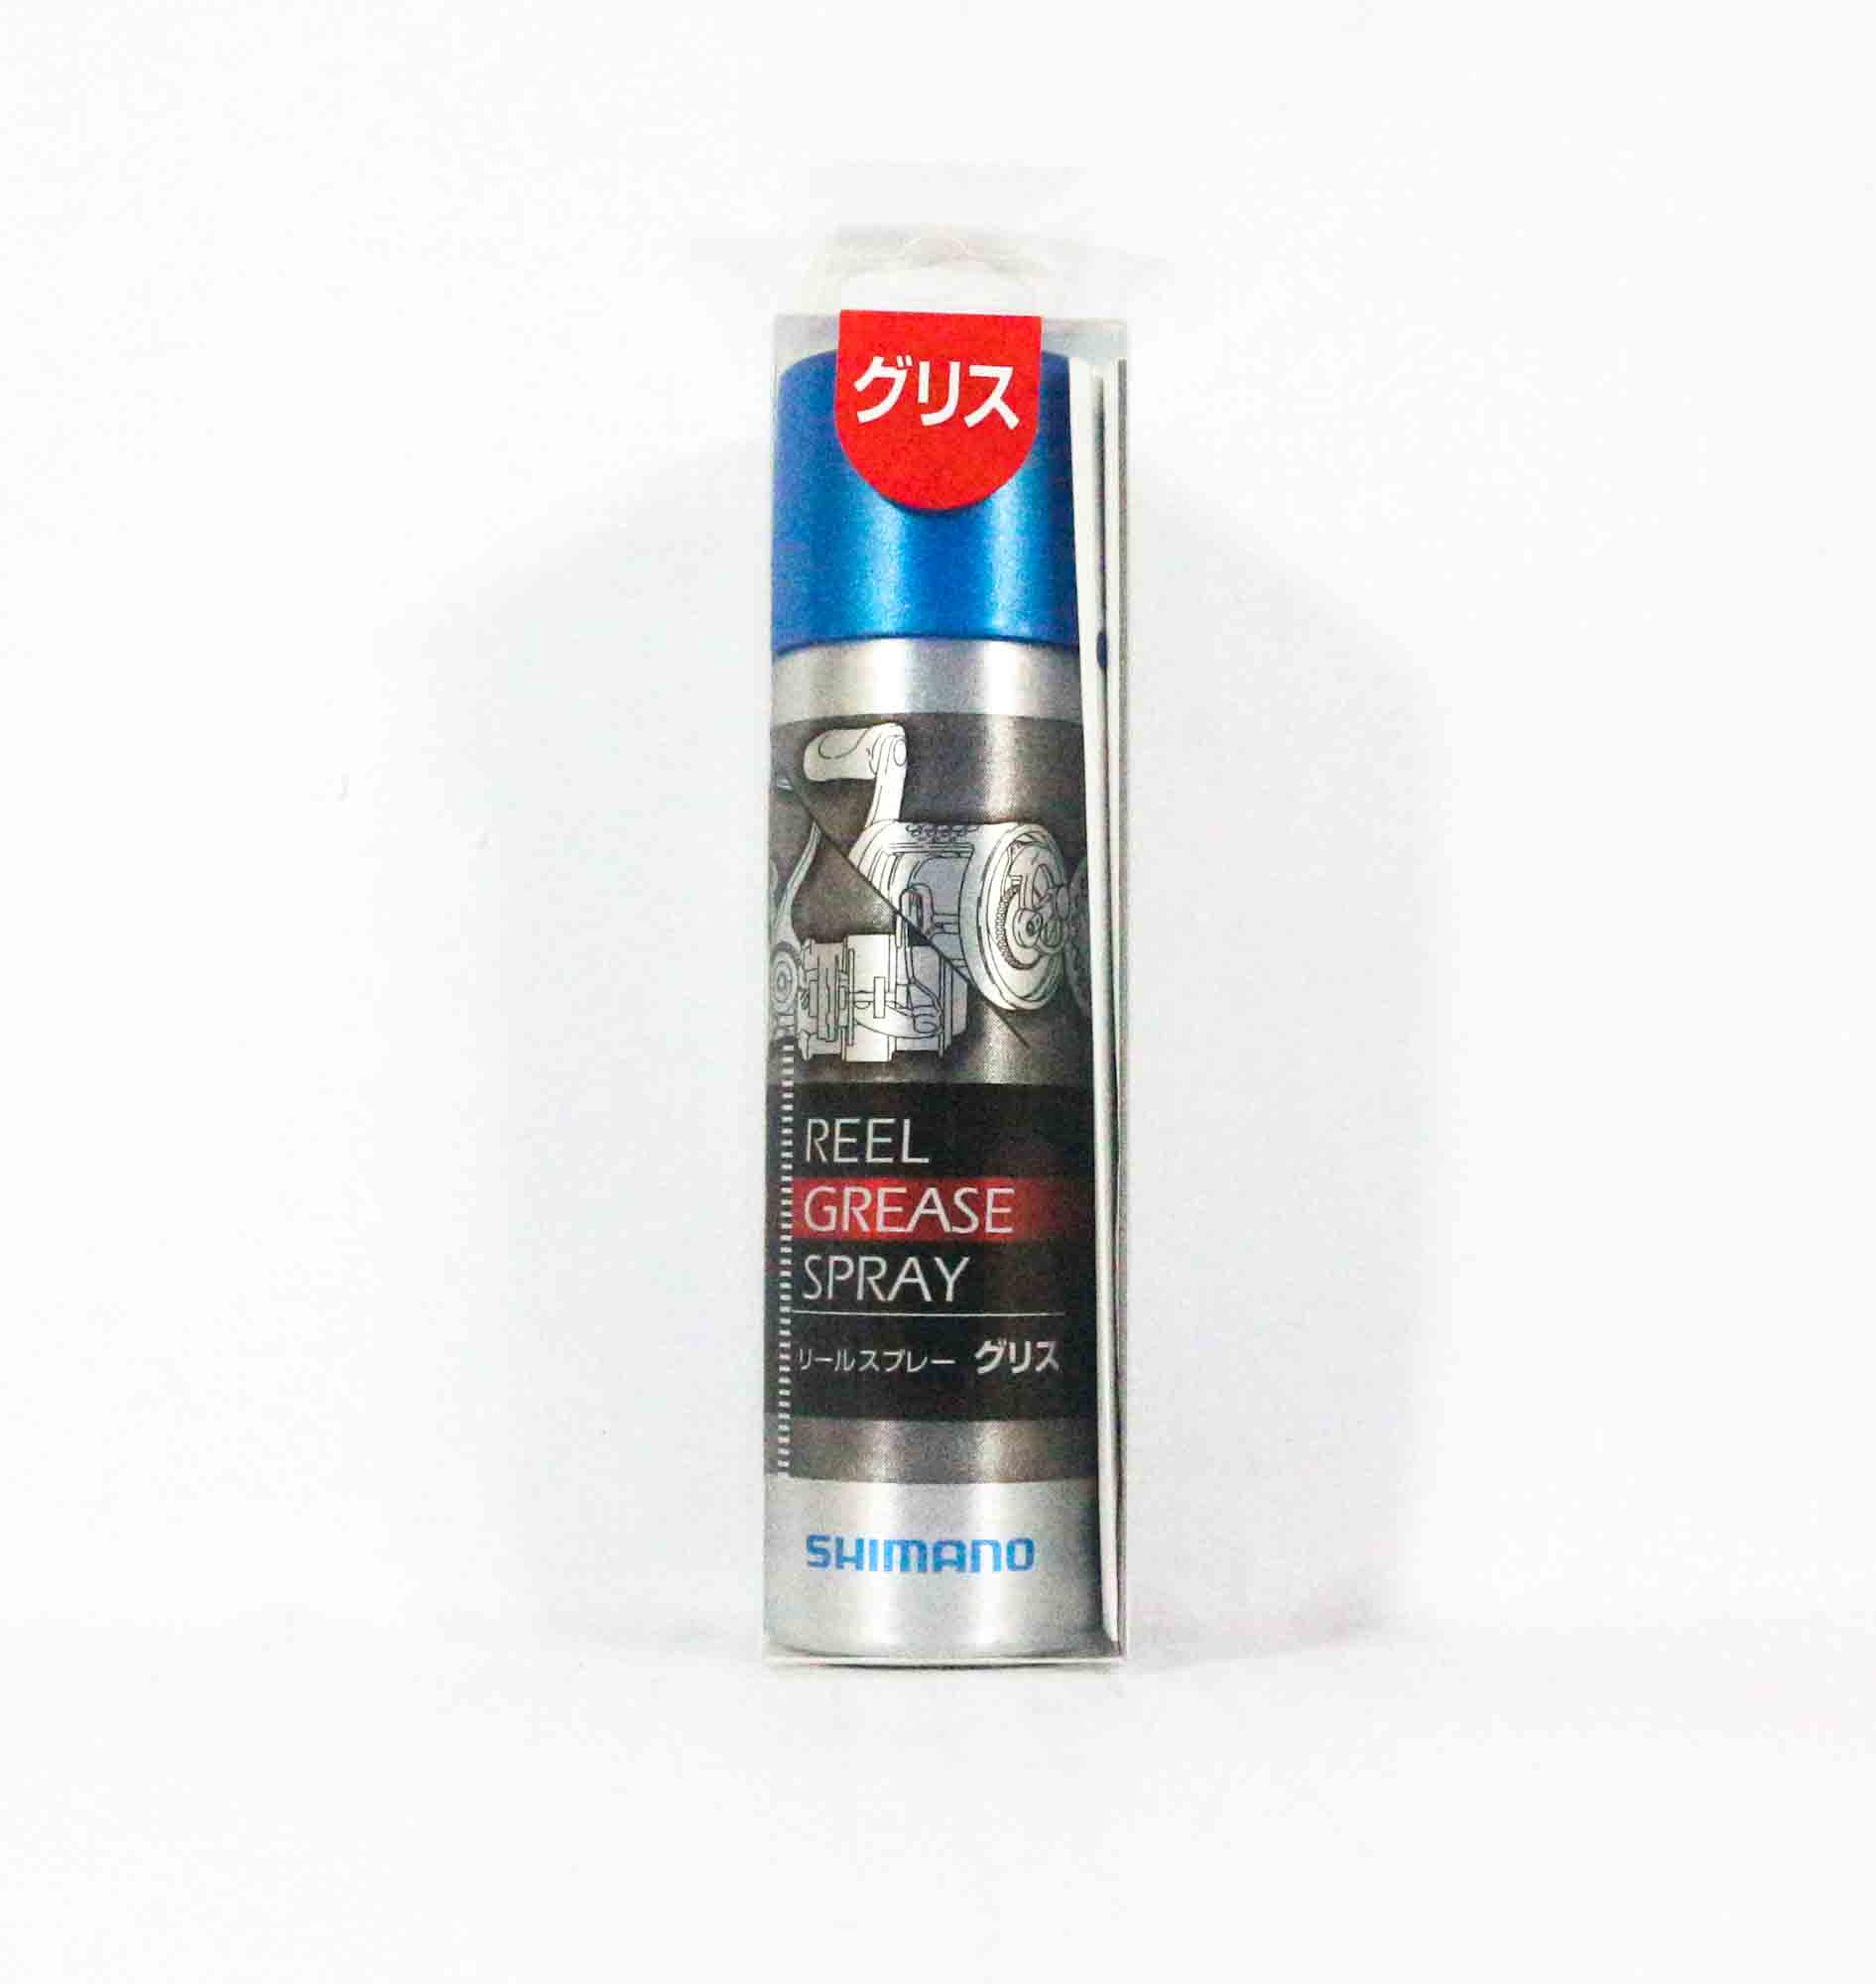 Shimano SP-023A Grease Spray Reel Maintainence 913647